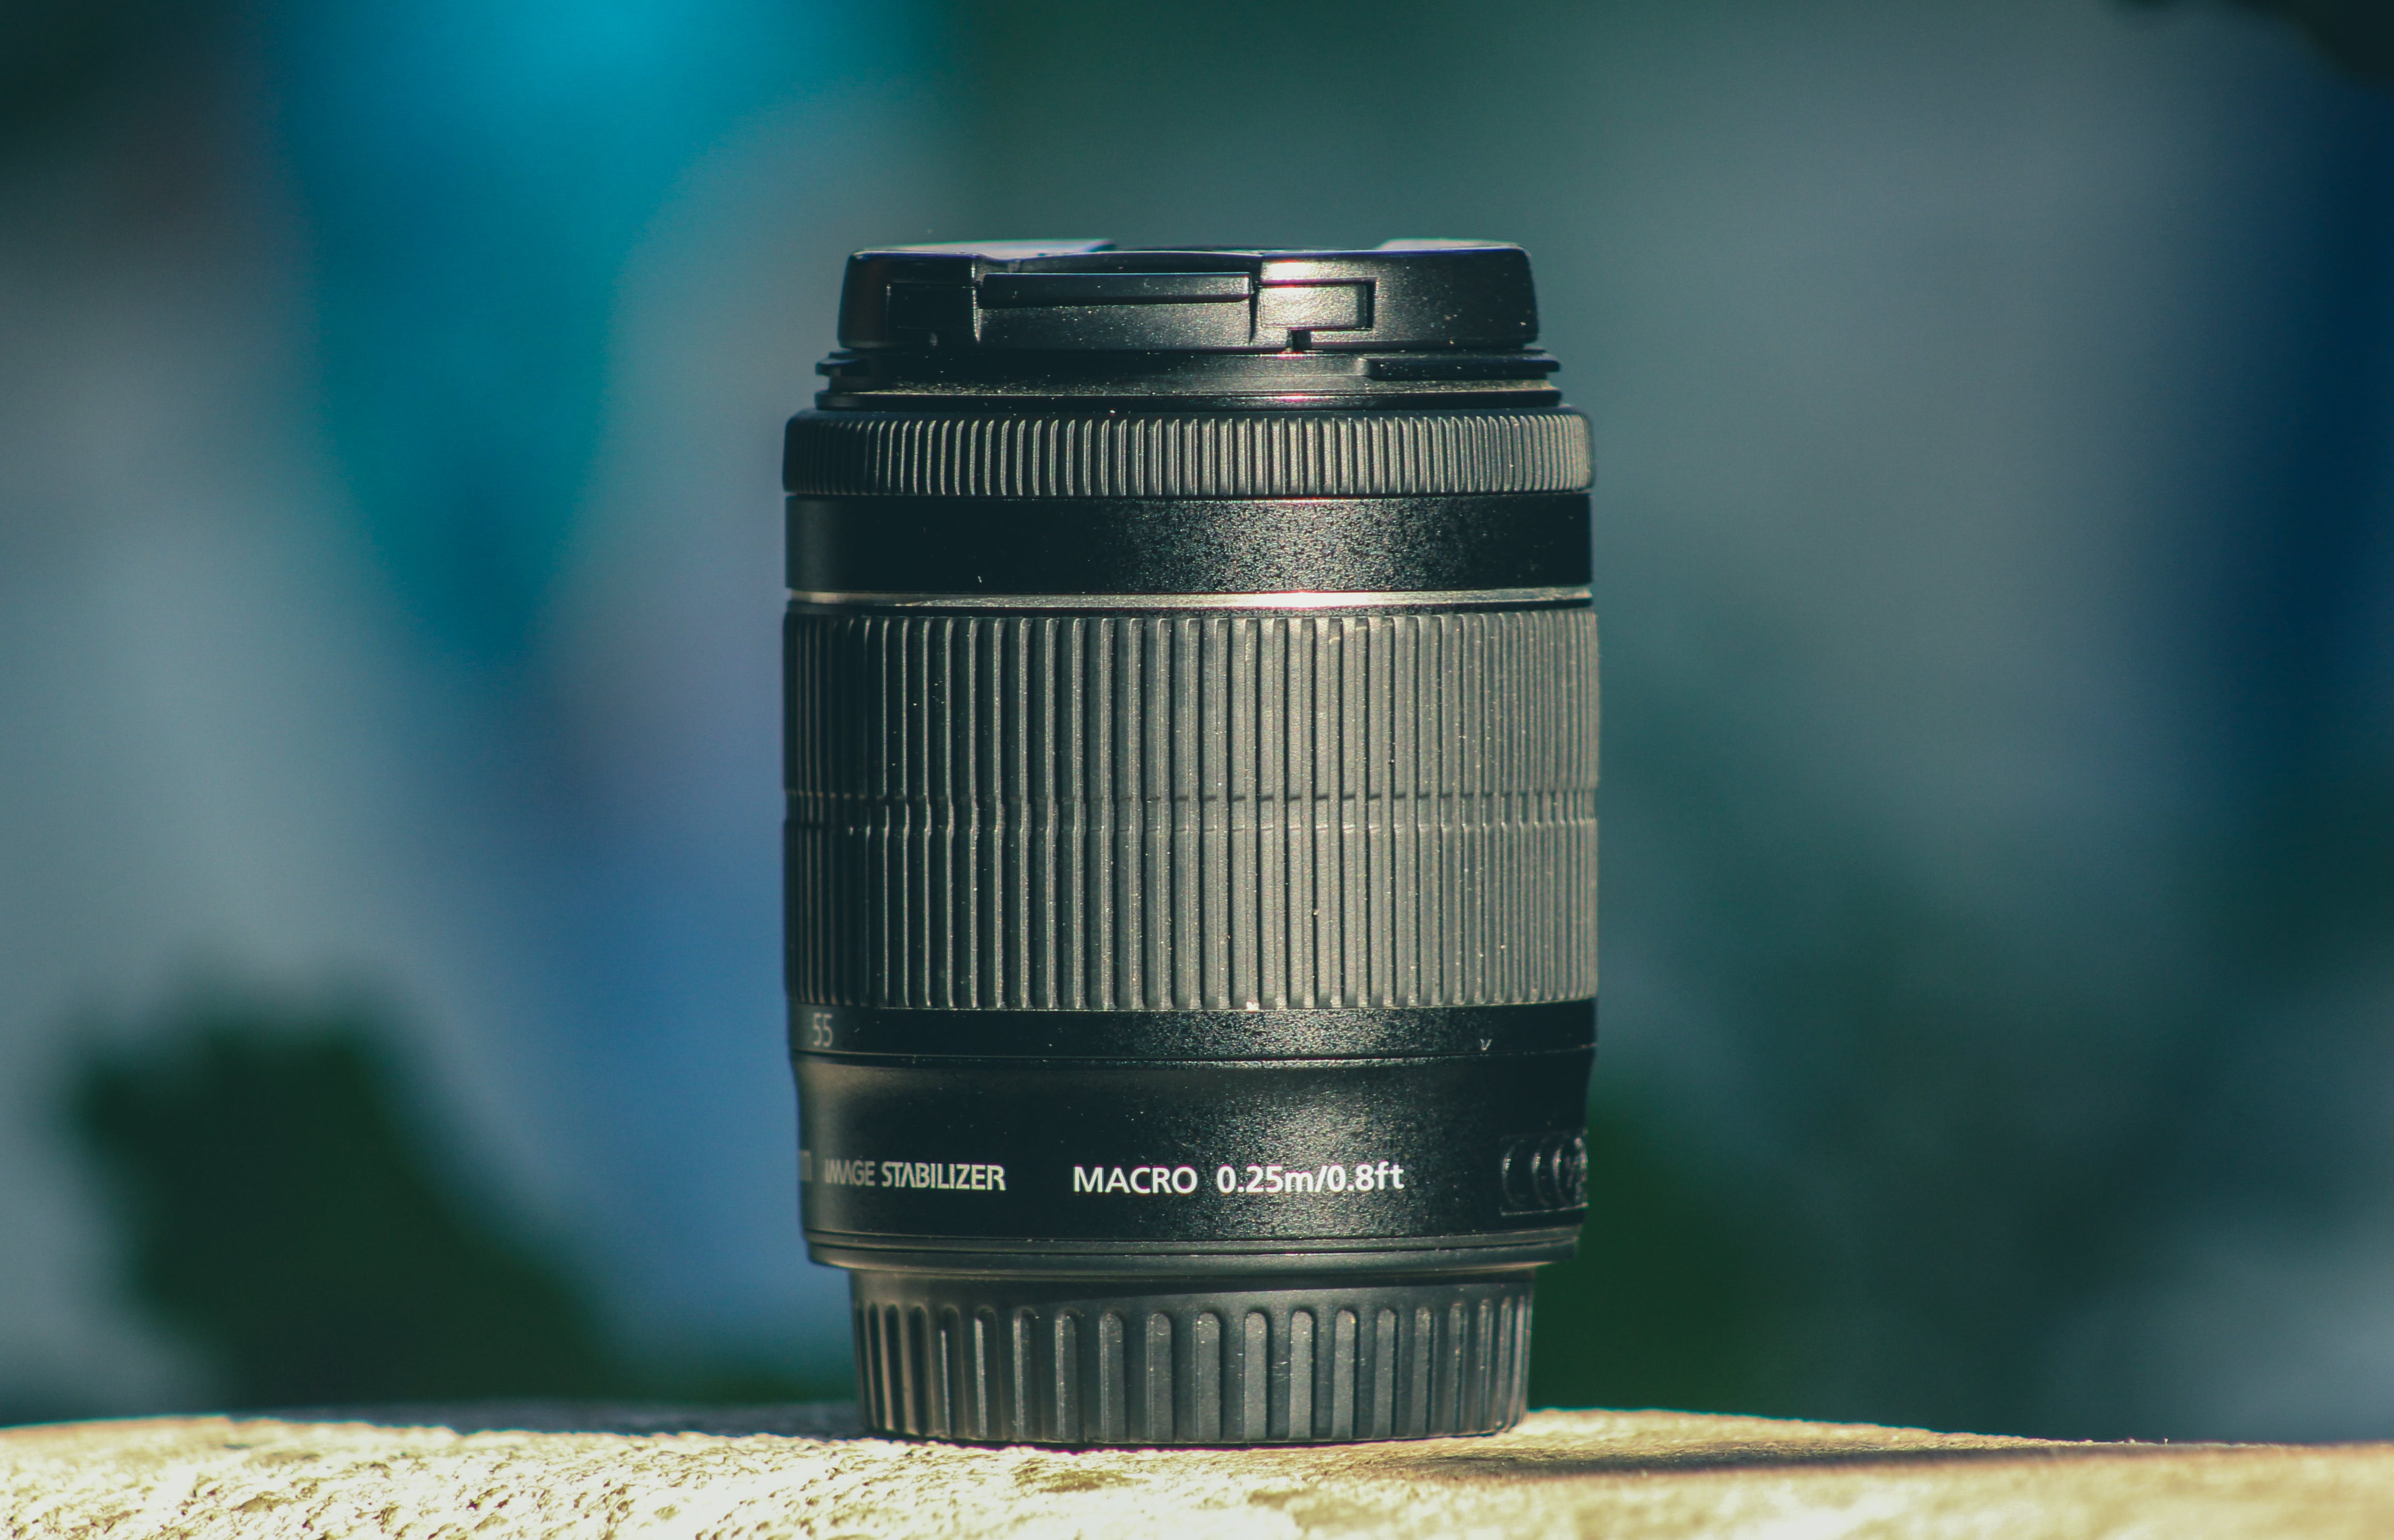 Black Dslr Camera Lens in Shallow Focus Photography